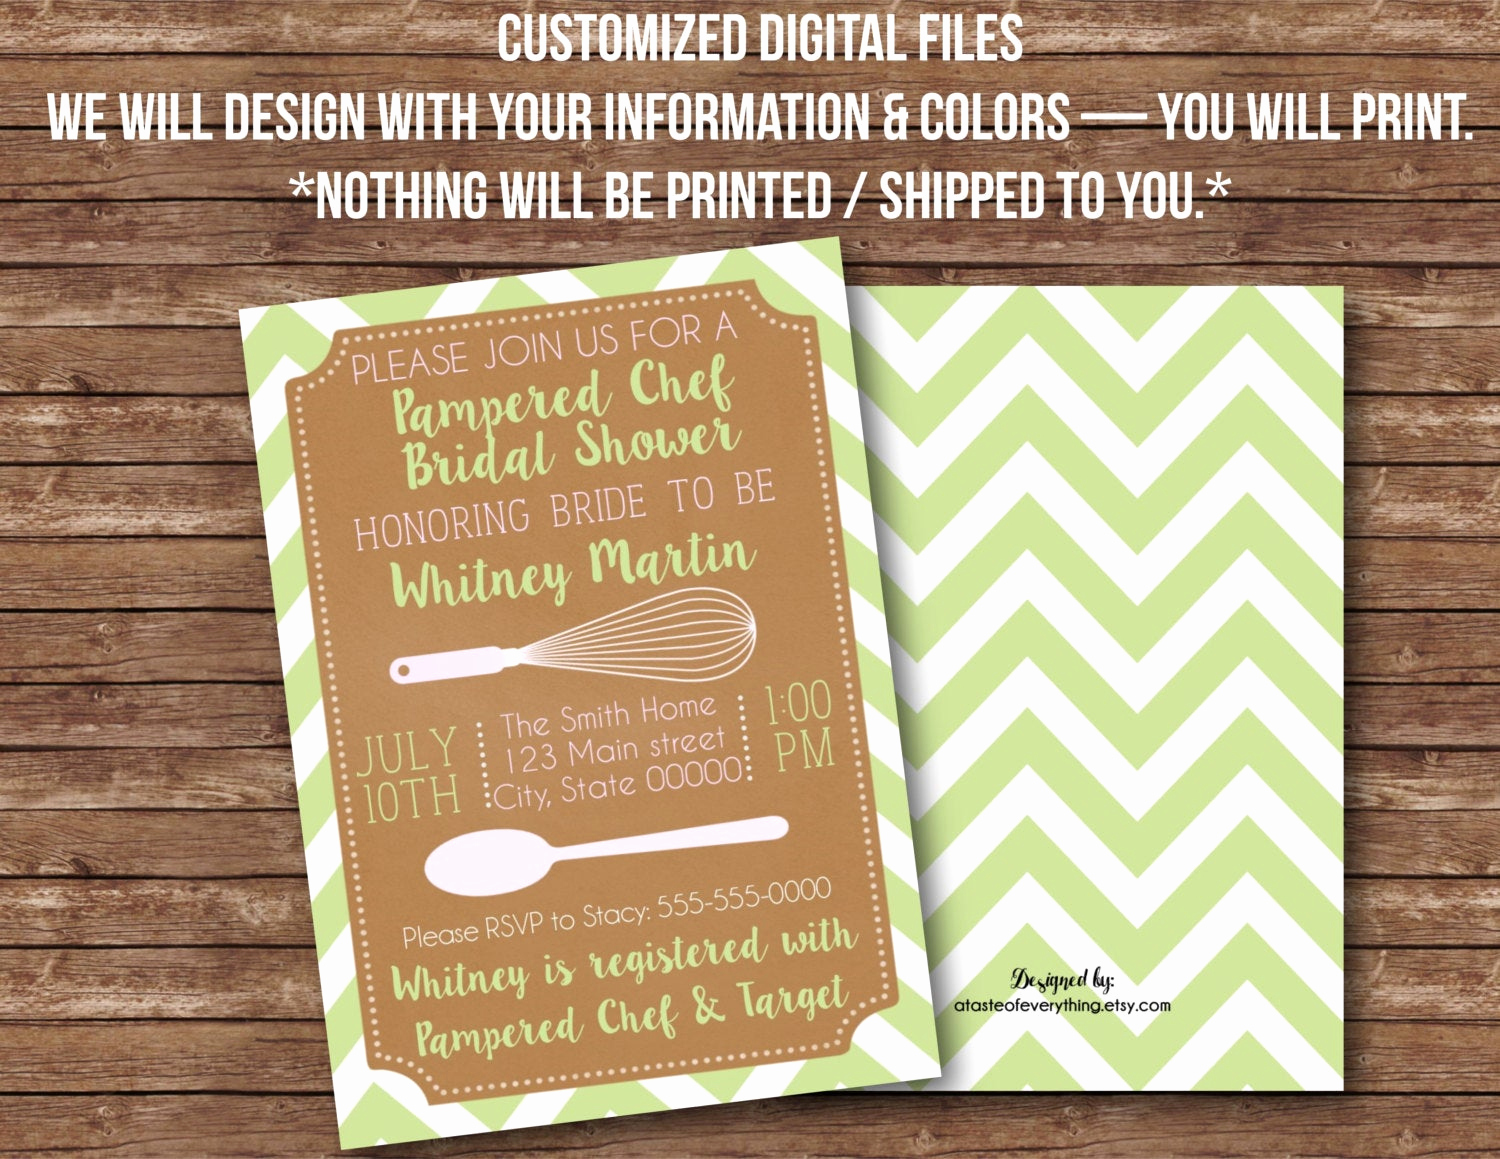 Pampered Chef Bridal Shower Invitation Lovely Digital Files Pampered Chef Kitchen Bridal Shower Baby Shower